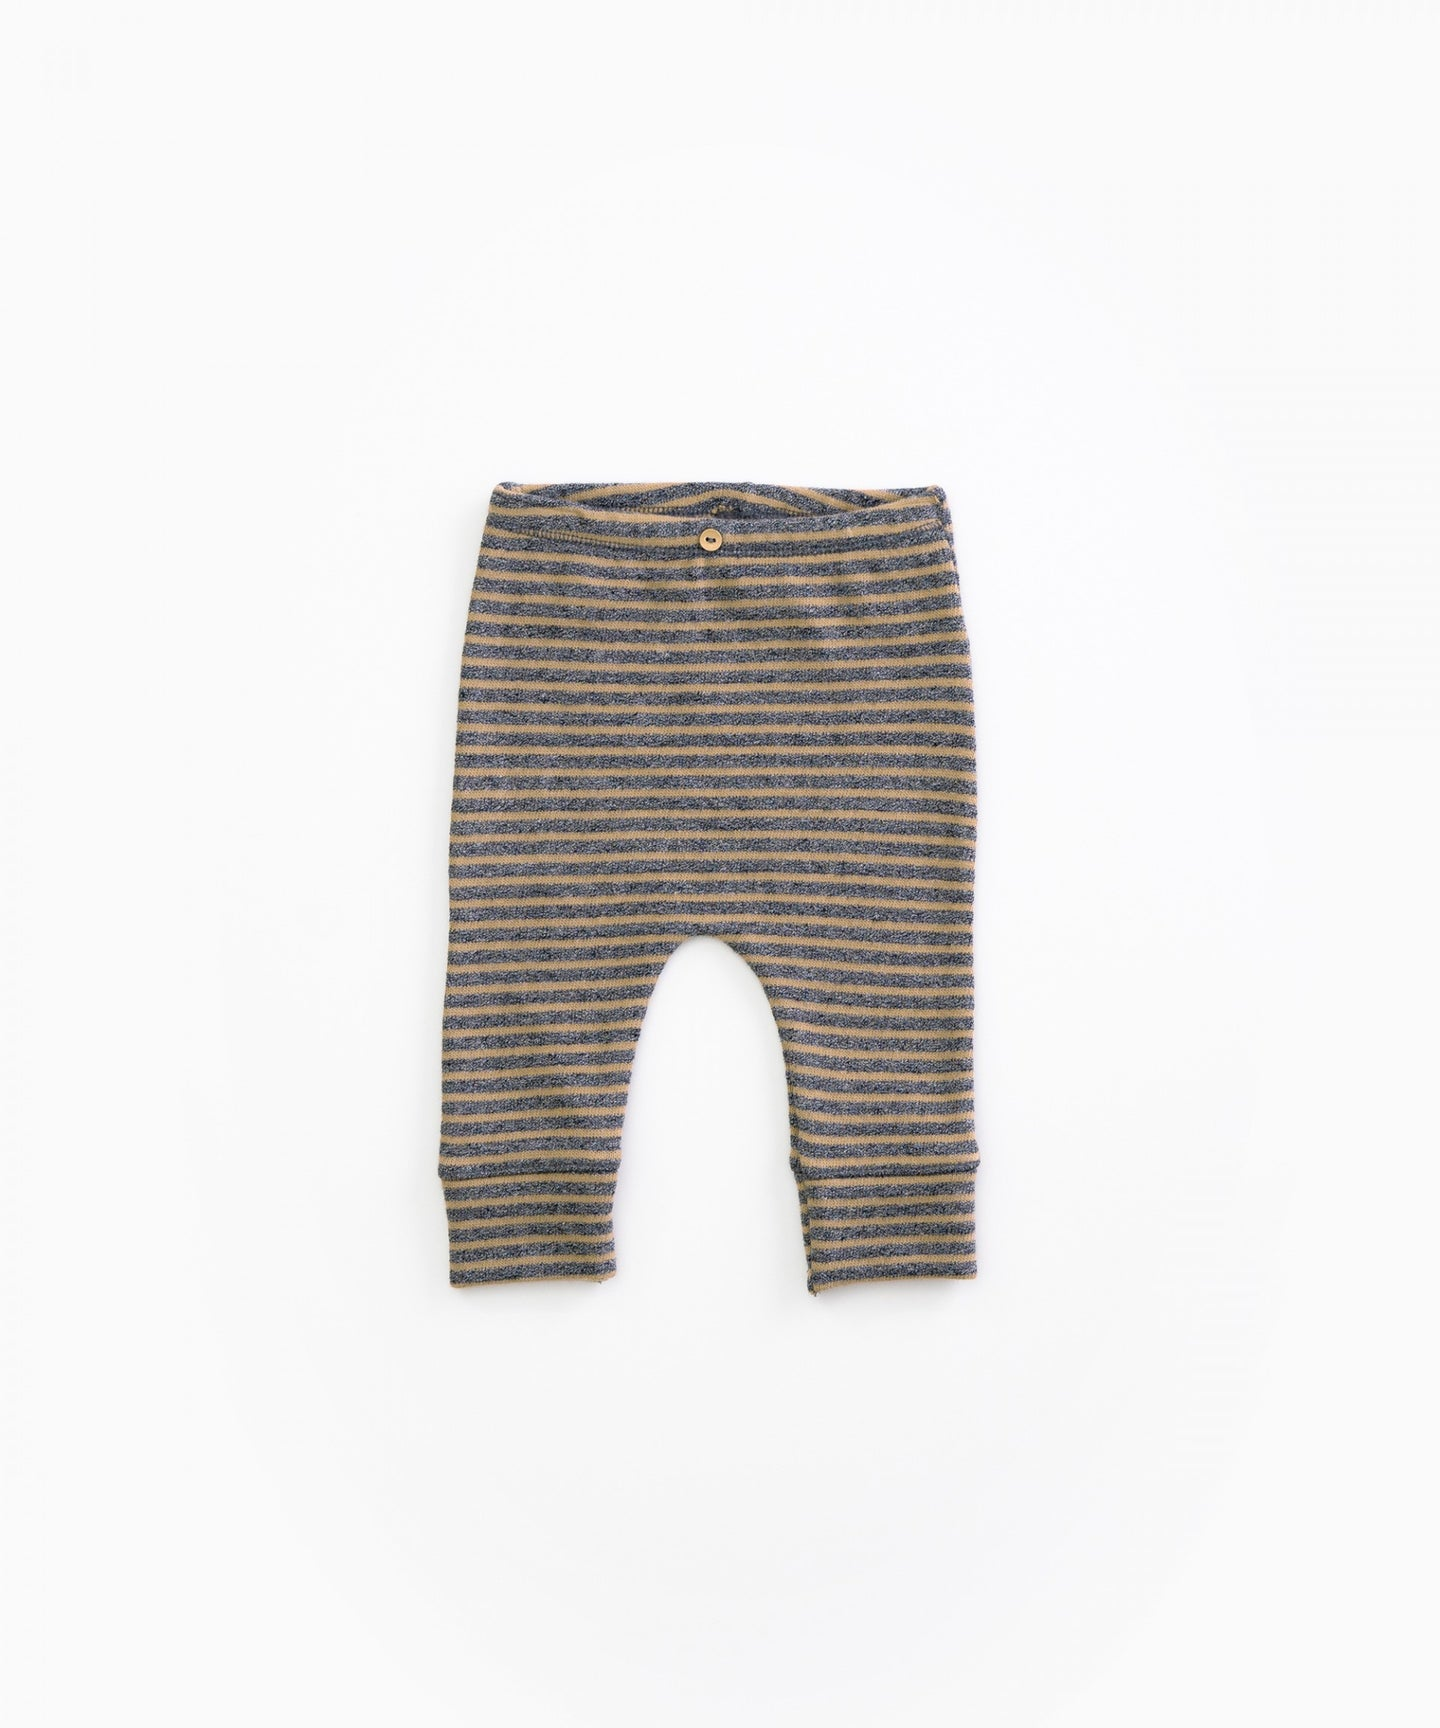 Play Up - Organic Jersey Stitch Striped Leggings - Cherry Tree